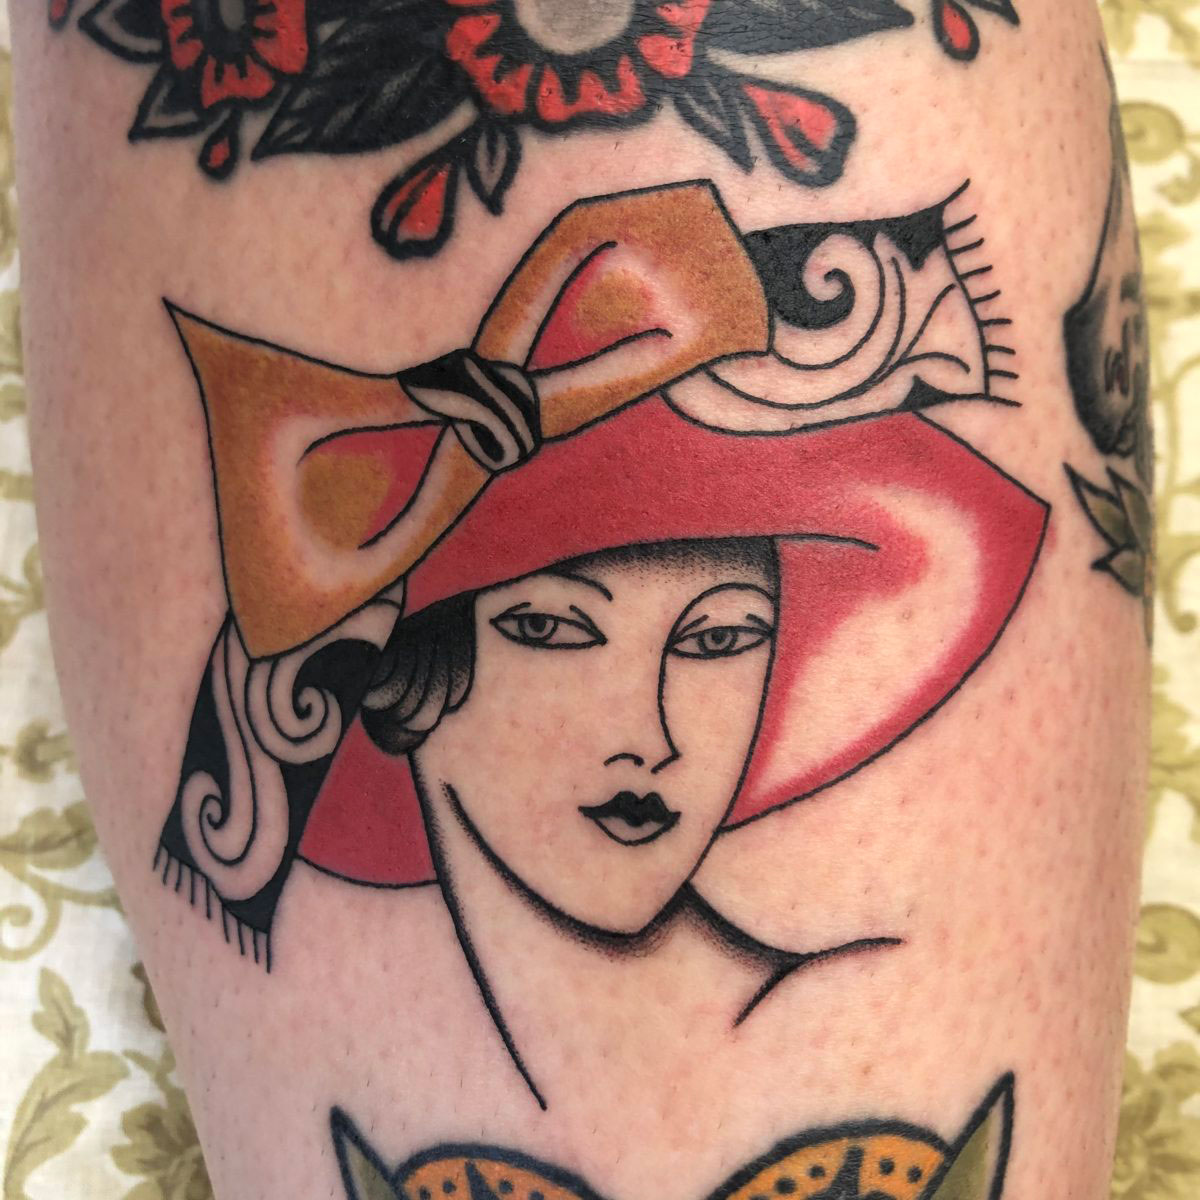 ornate vintage lady tattoo with extravagant hat